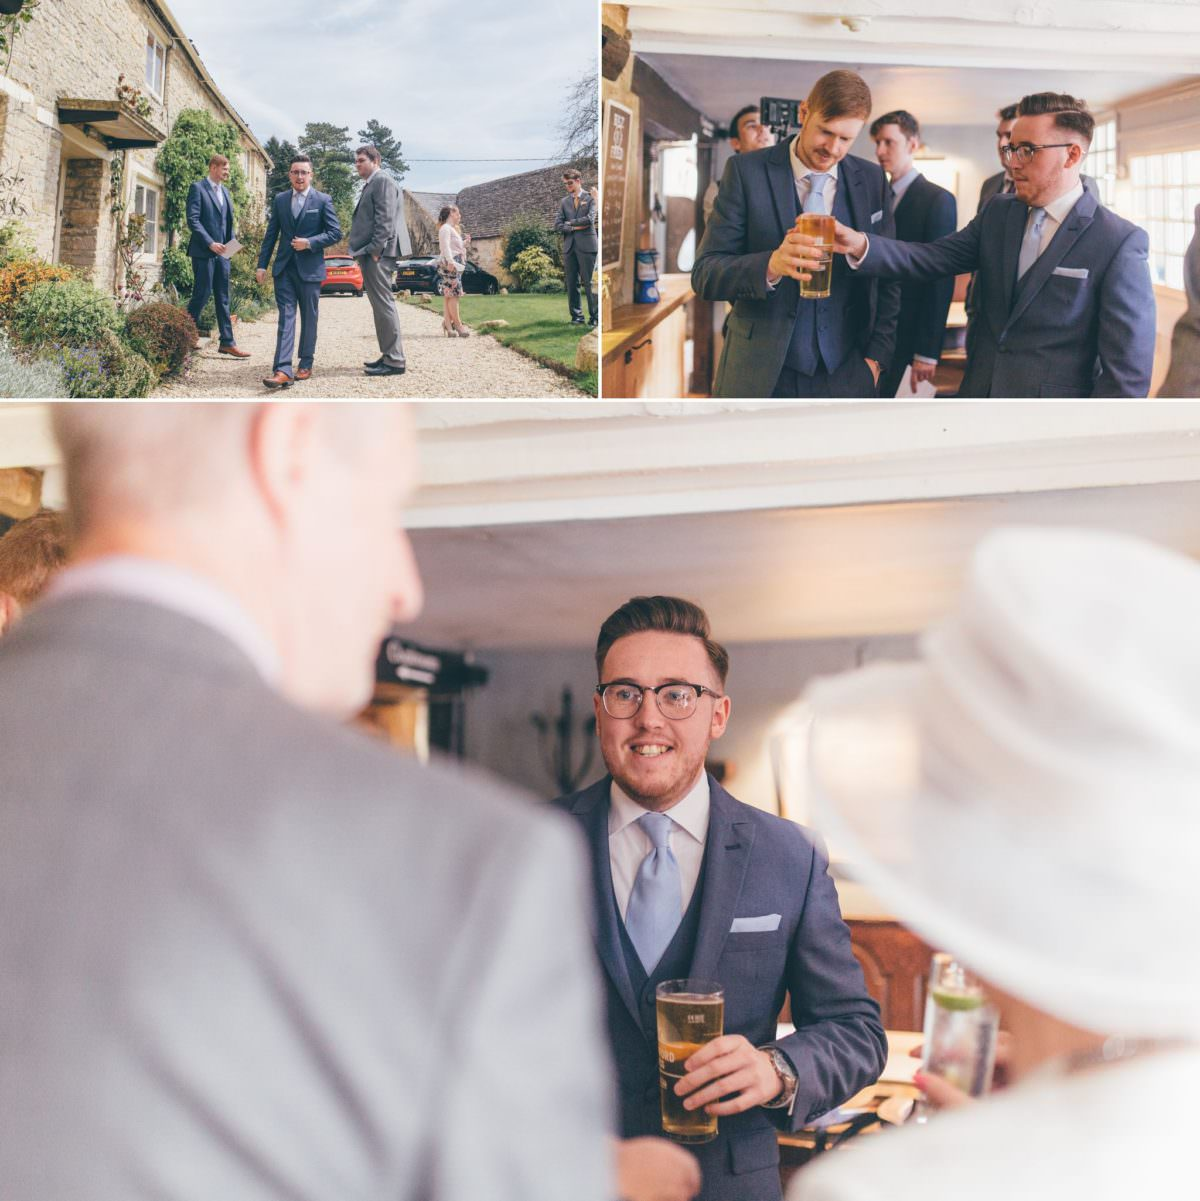 cripps_barn_gloucesterhsire_welsh_wedding_photographer_rachel_lambert_photography_jordan_amy_ 37